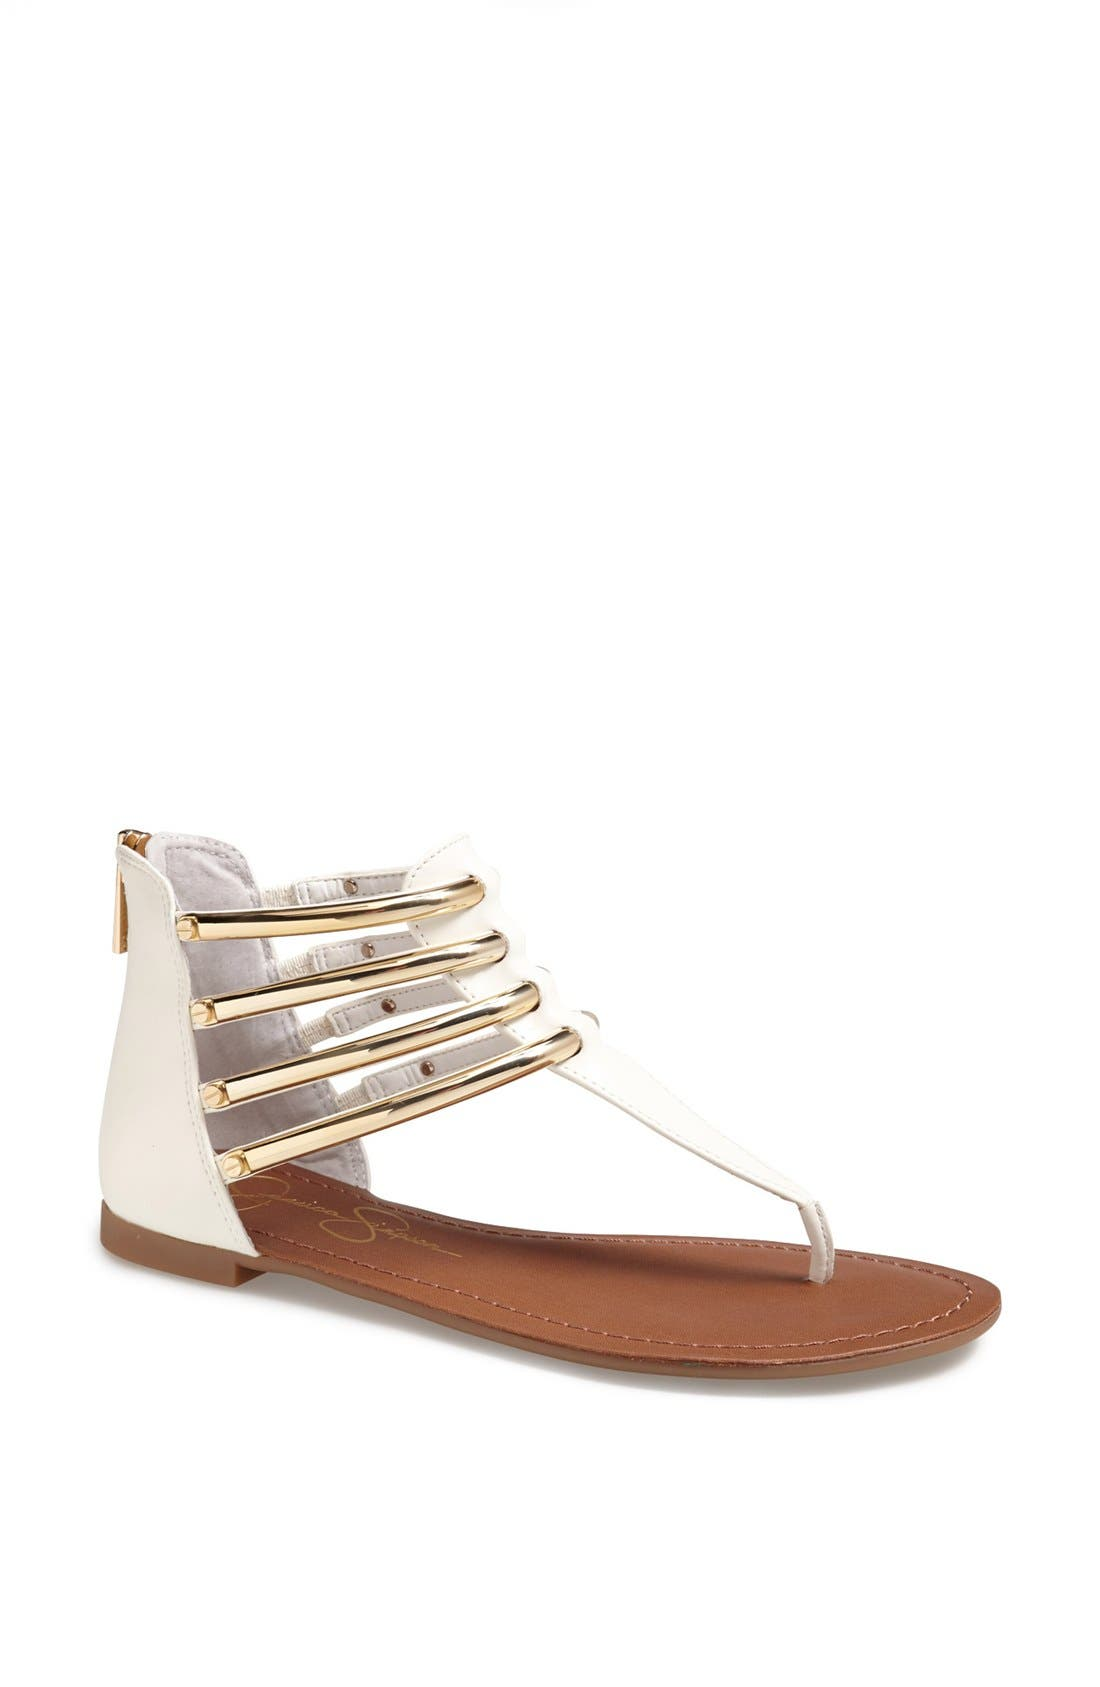 Alternate Image 1 Selected - Jessica Simpson 'Gionara' Thong Sandal